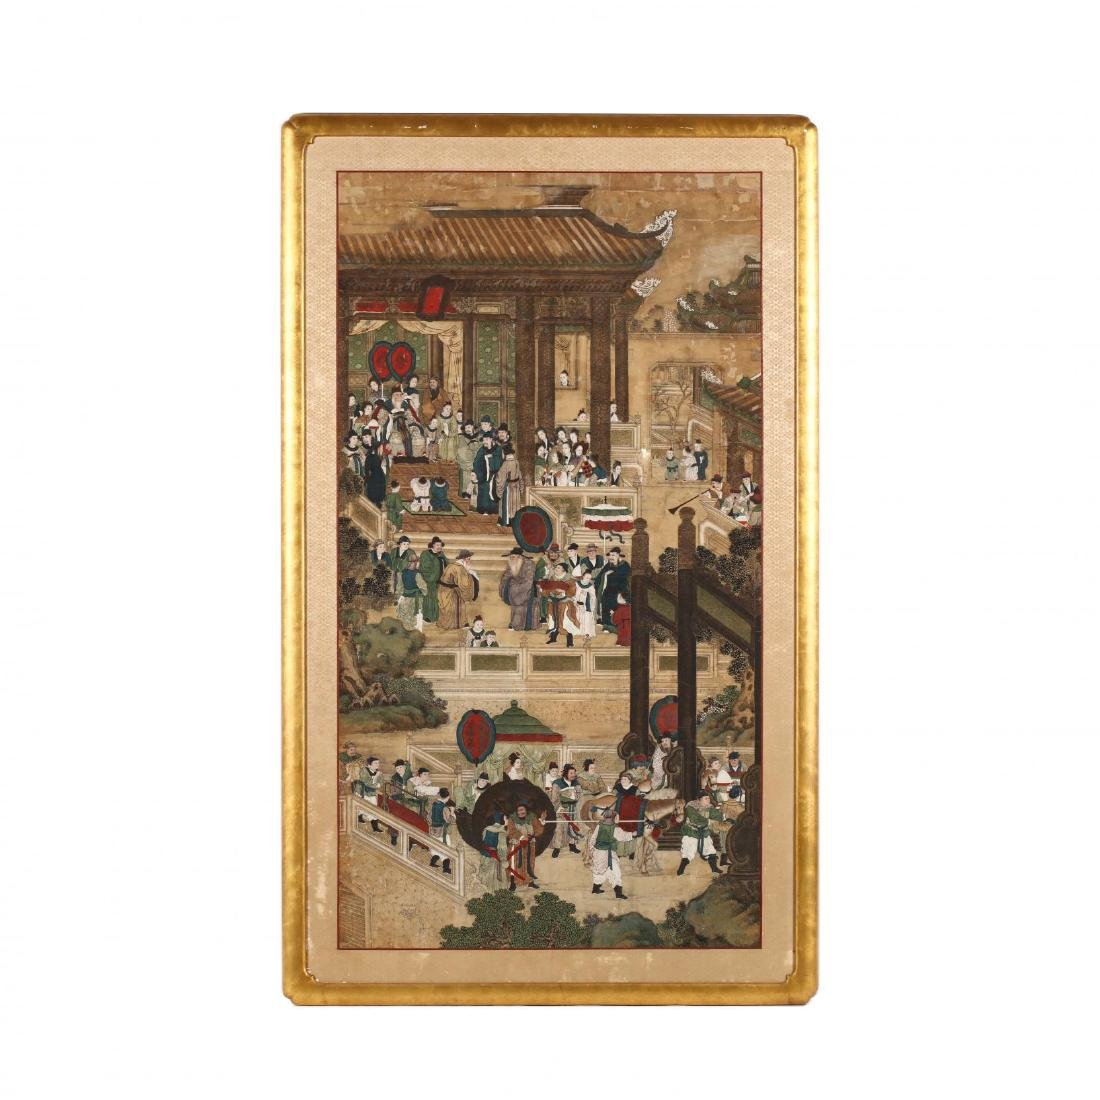 A Qing Dynasty Chinese Court Painting